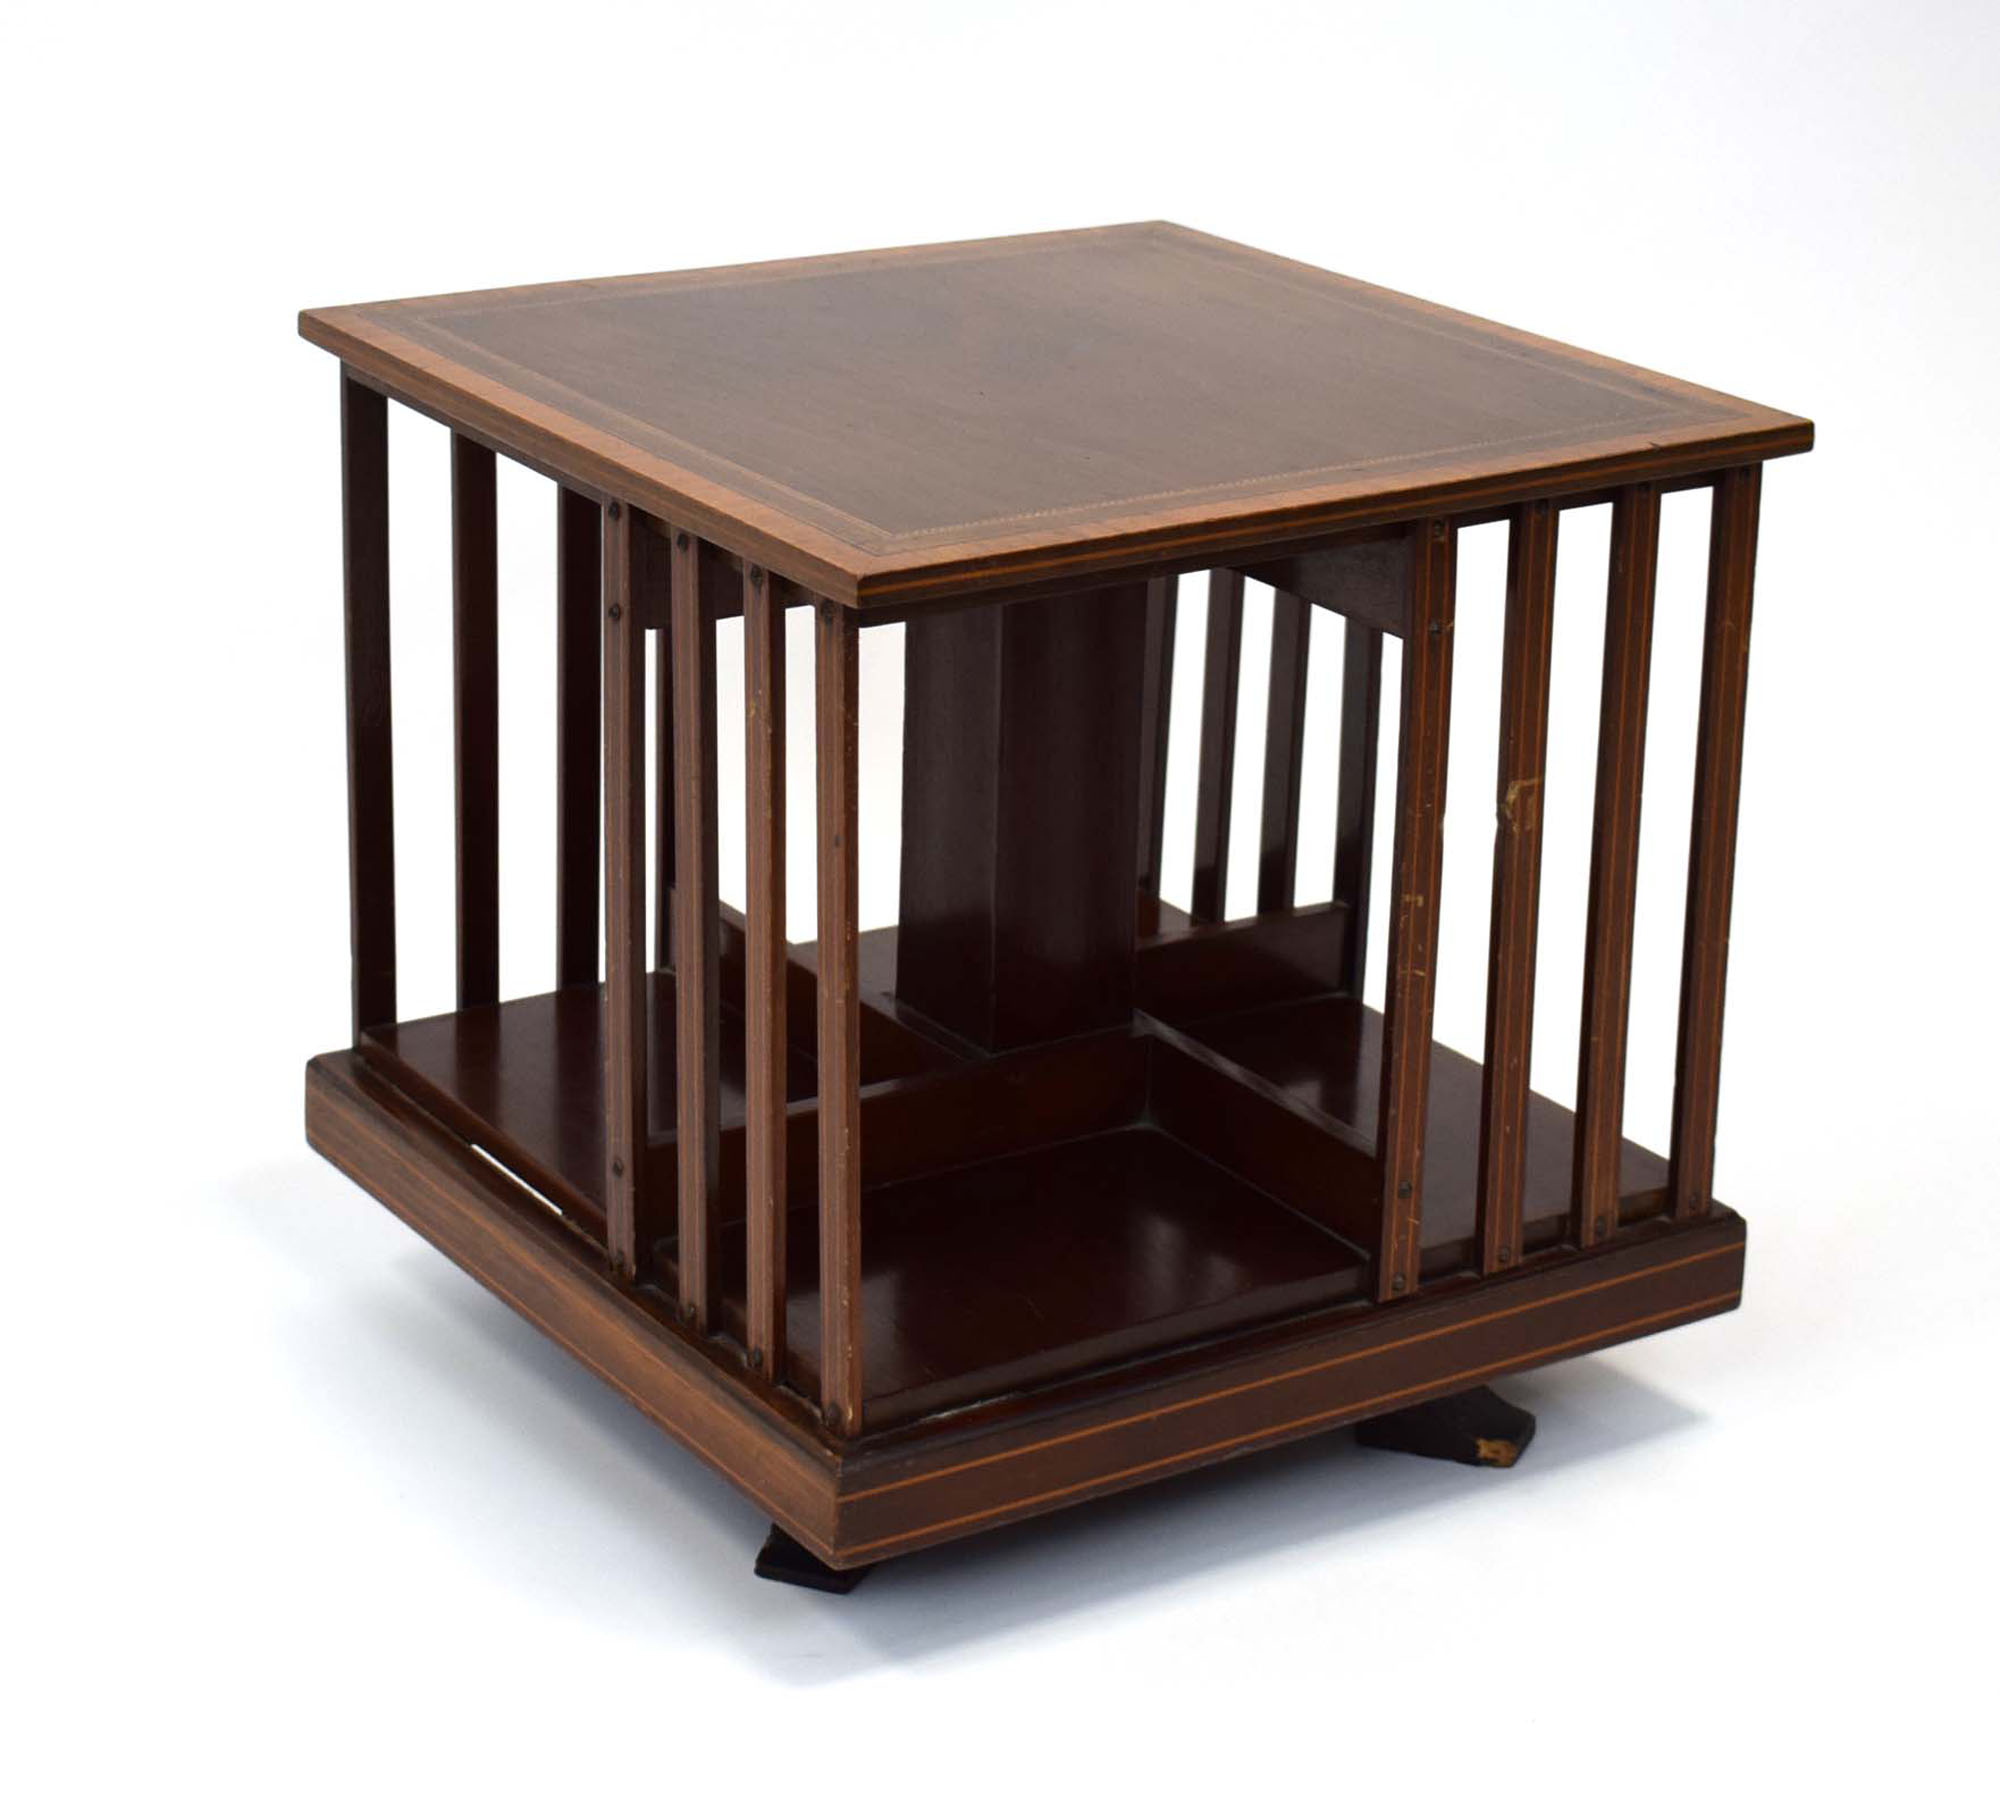 21 (4/6) An Edwardian mahogany, strung and inlaid revolving bookcase of small proportions, 55 cm